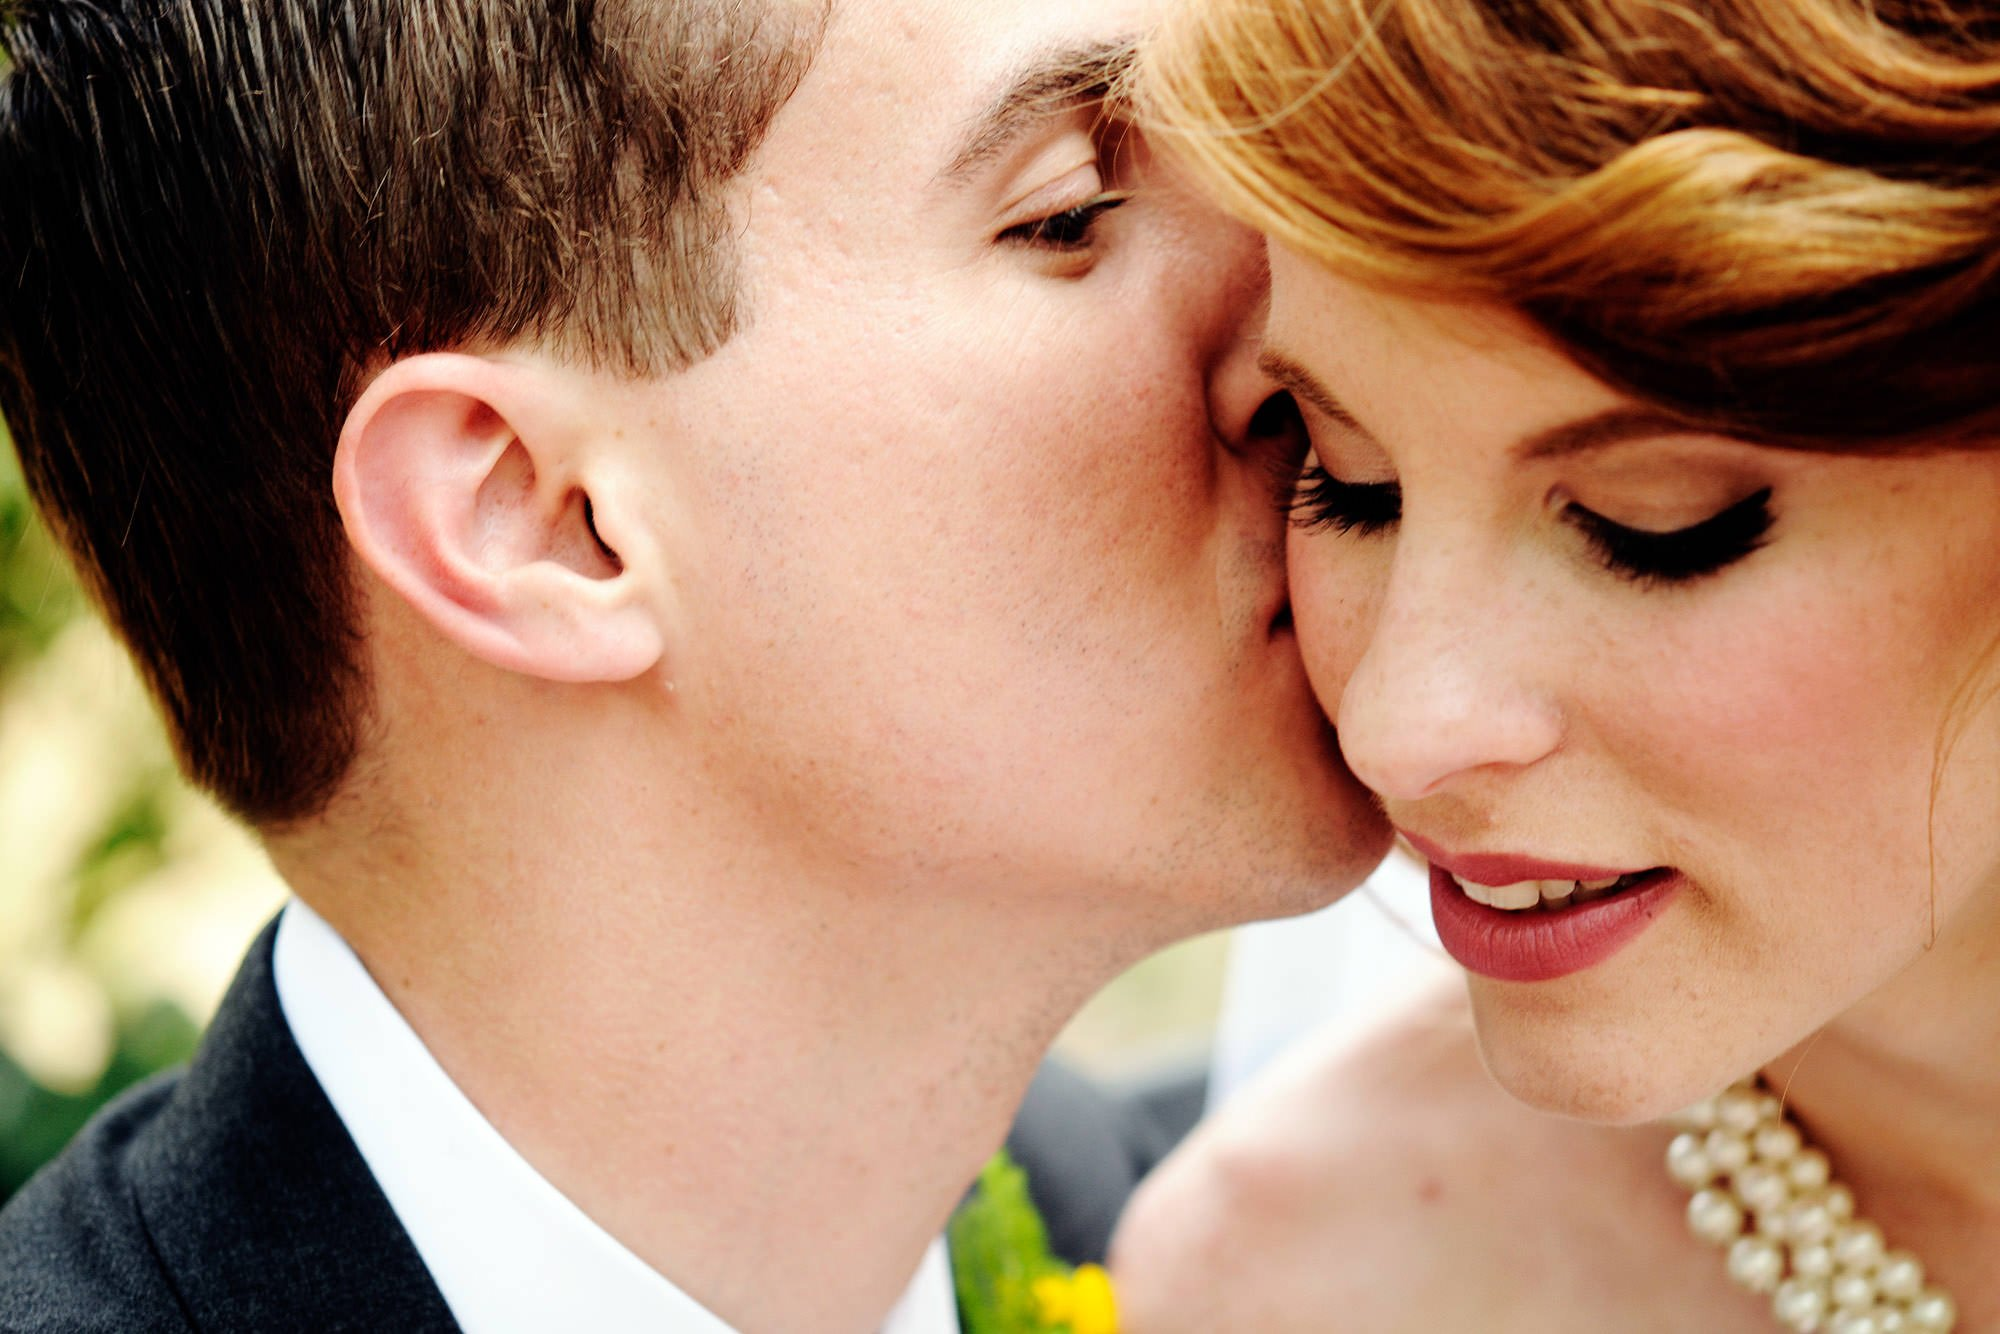 The couple kisses in Lafayette Park in Washington, DC before their Hay Adams wedding.